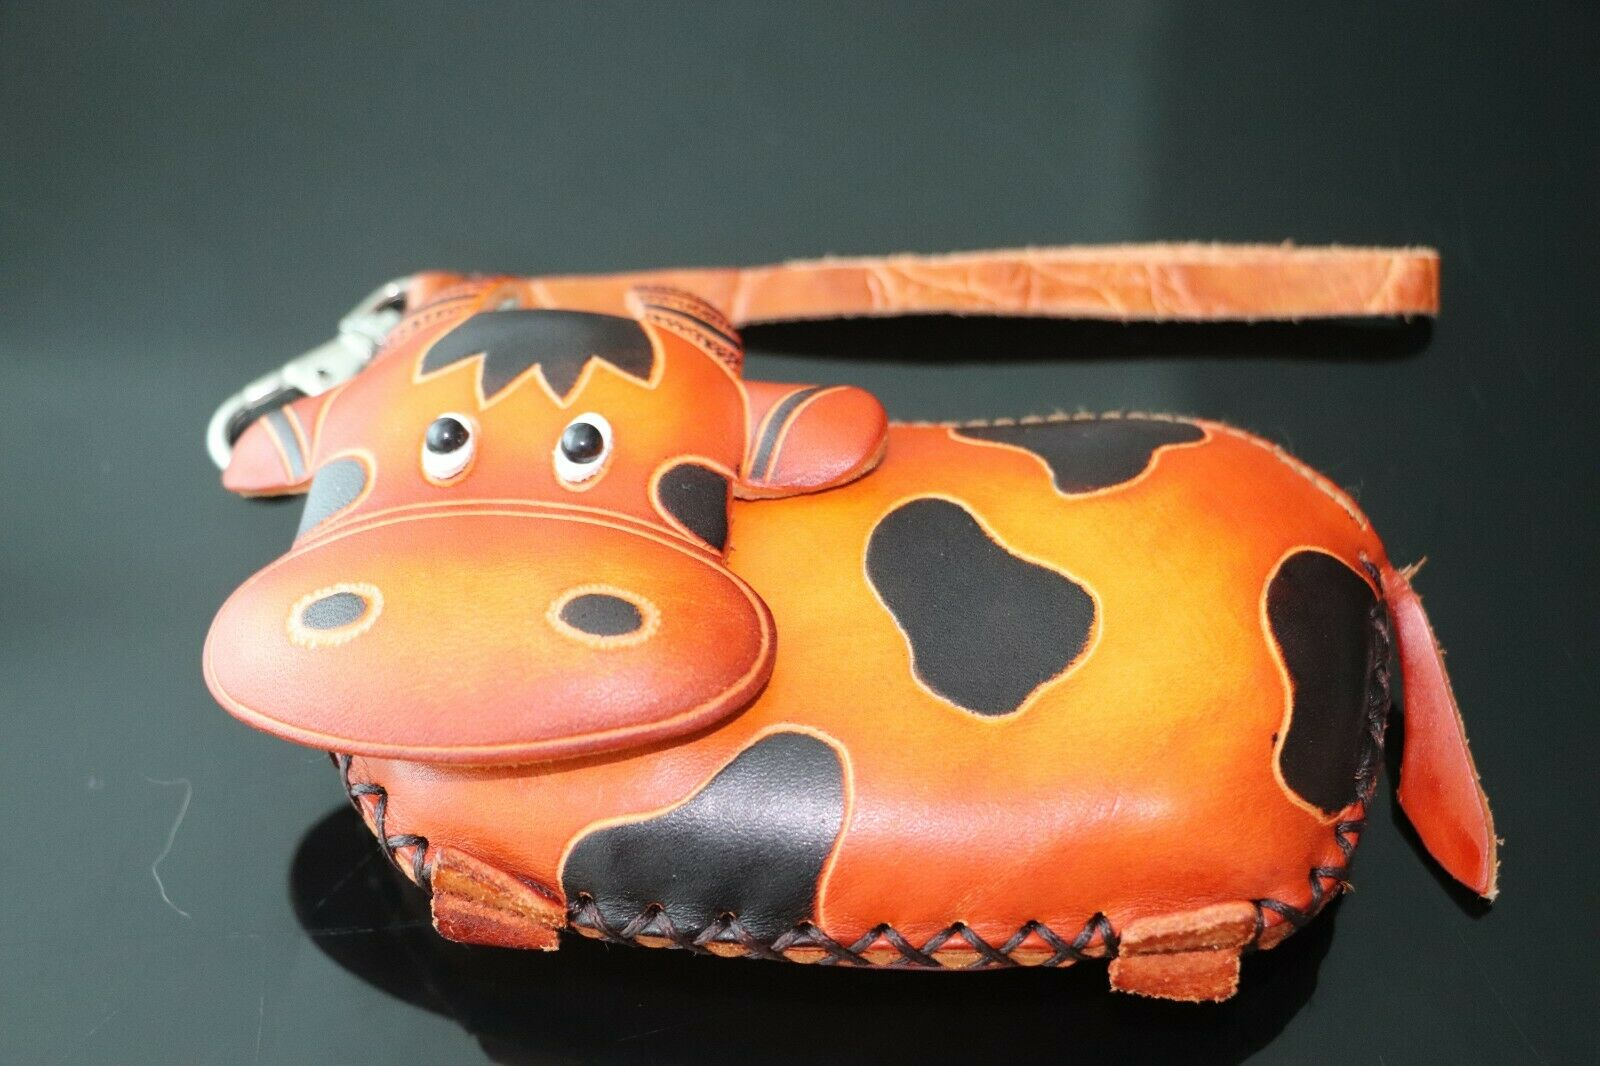 Leather Child/Adult Purse Real Leather in the Shape of a Cow Brand New